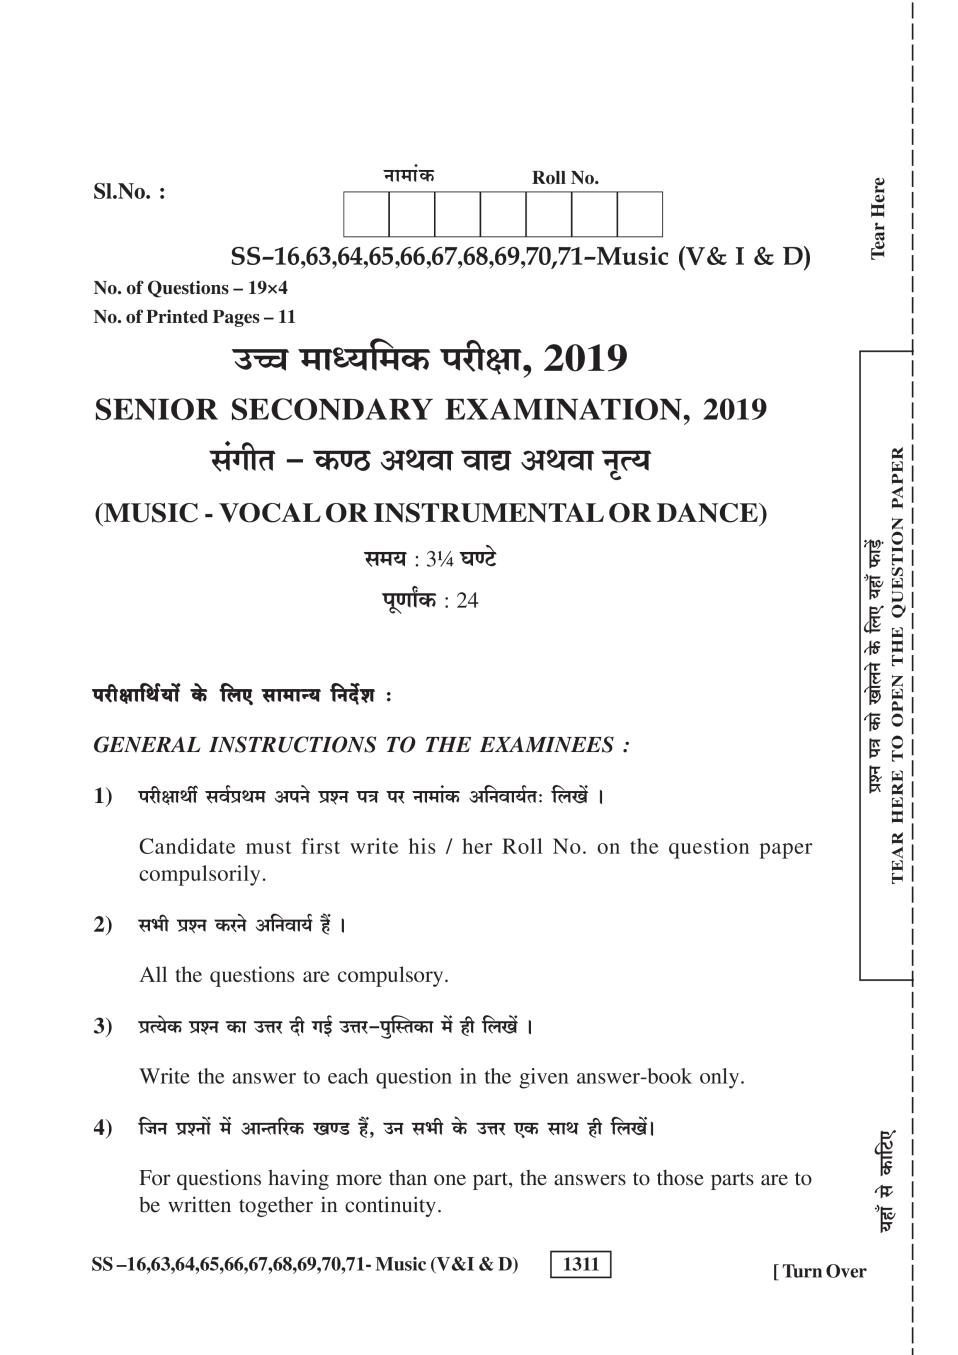 Rajasthan Board Sr. Secondary Secondary -Music Question Paper